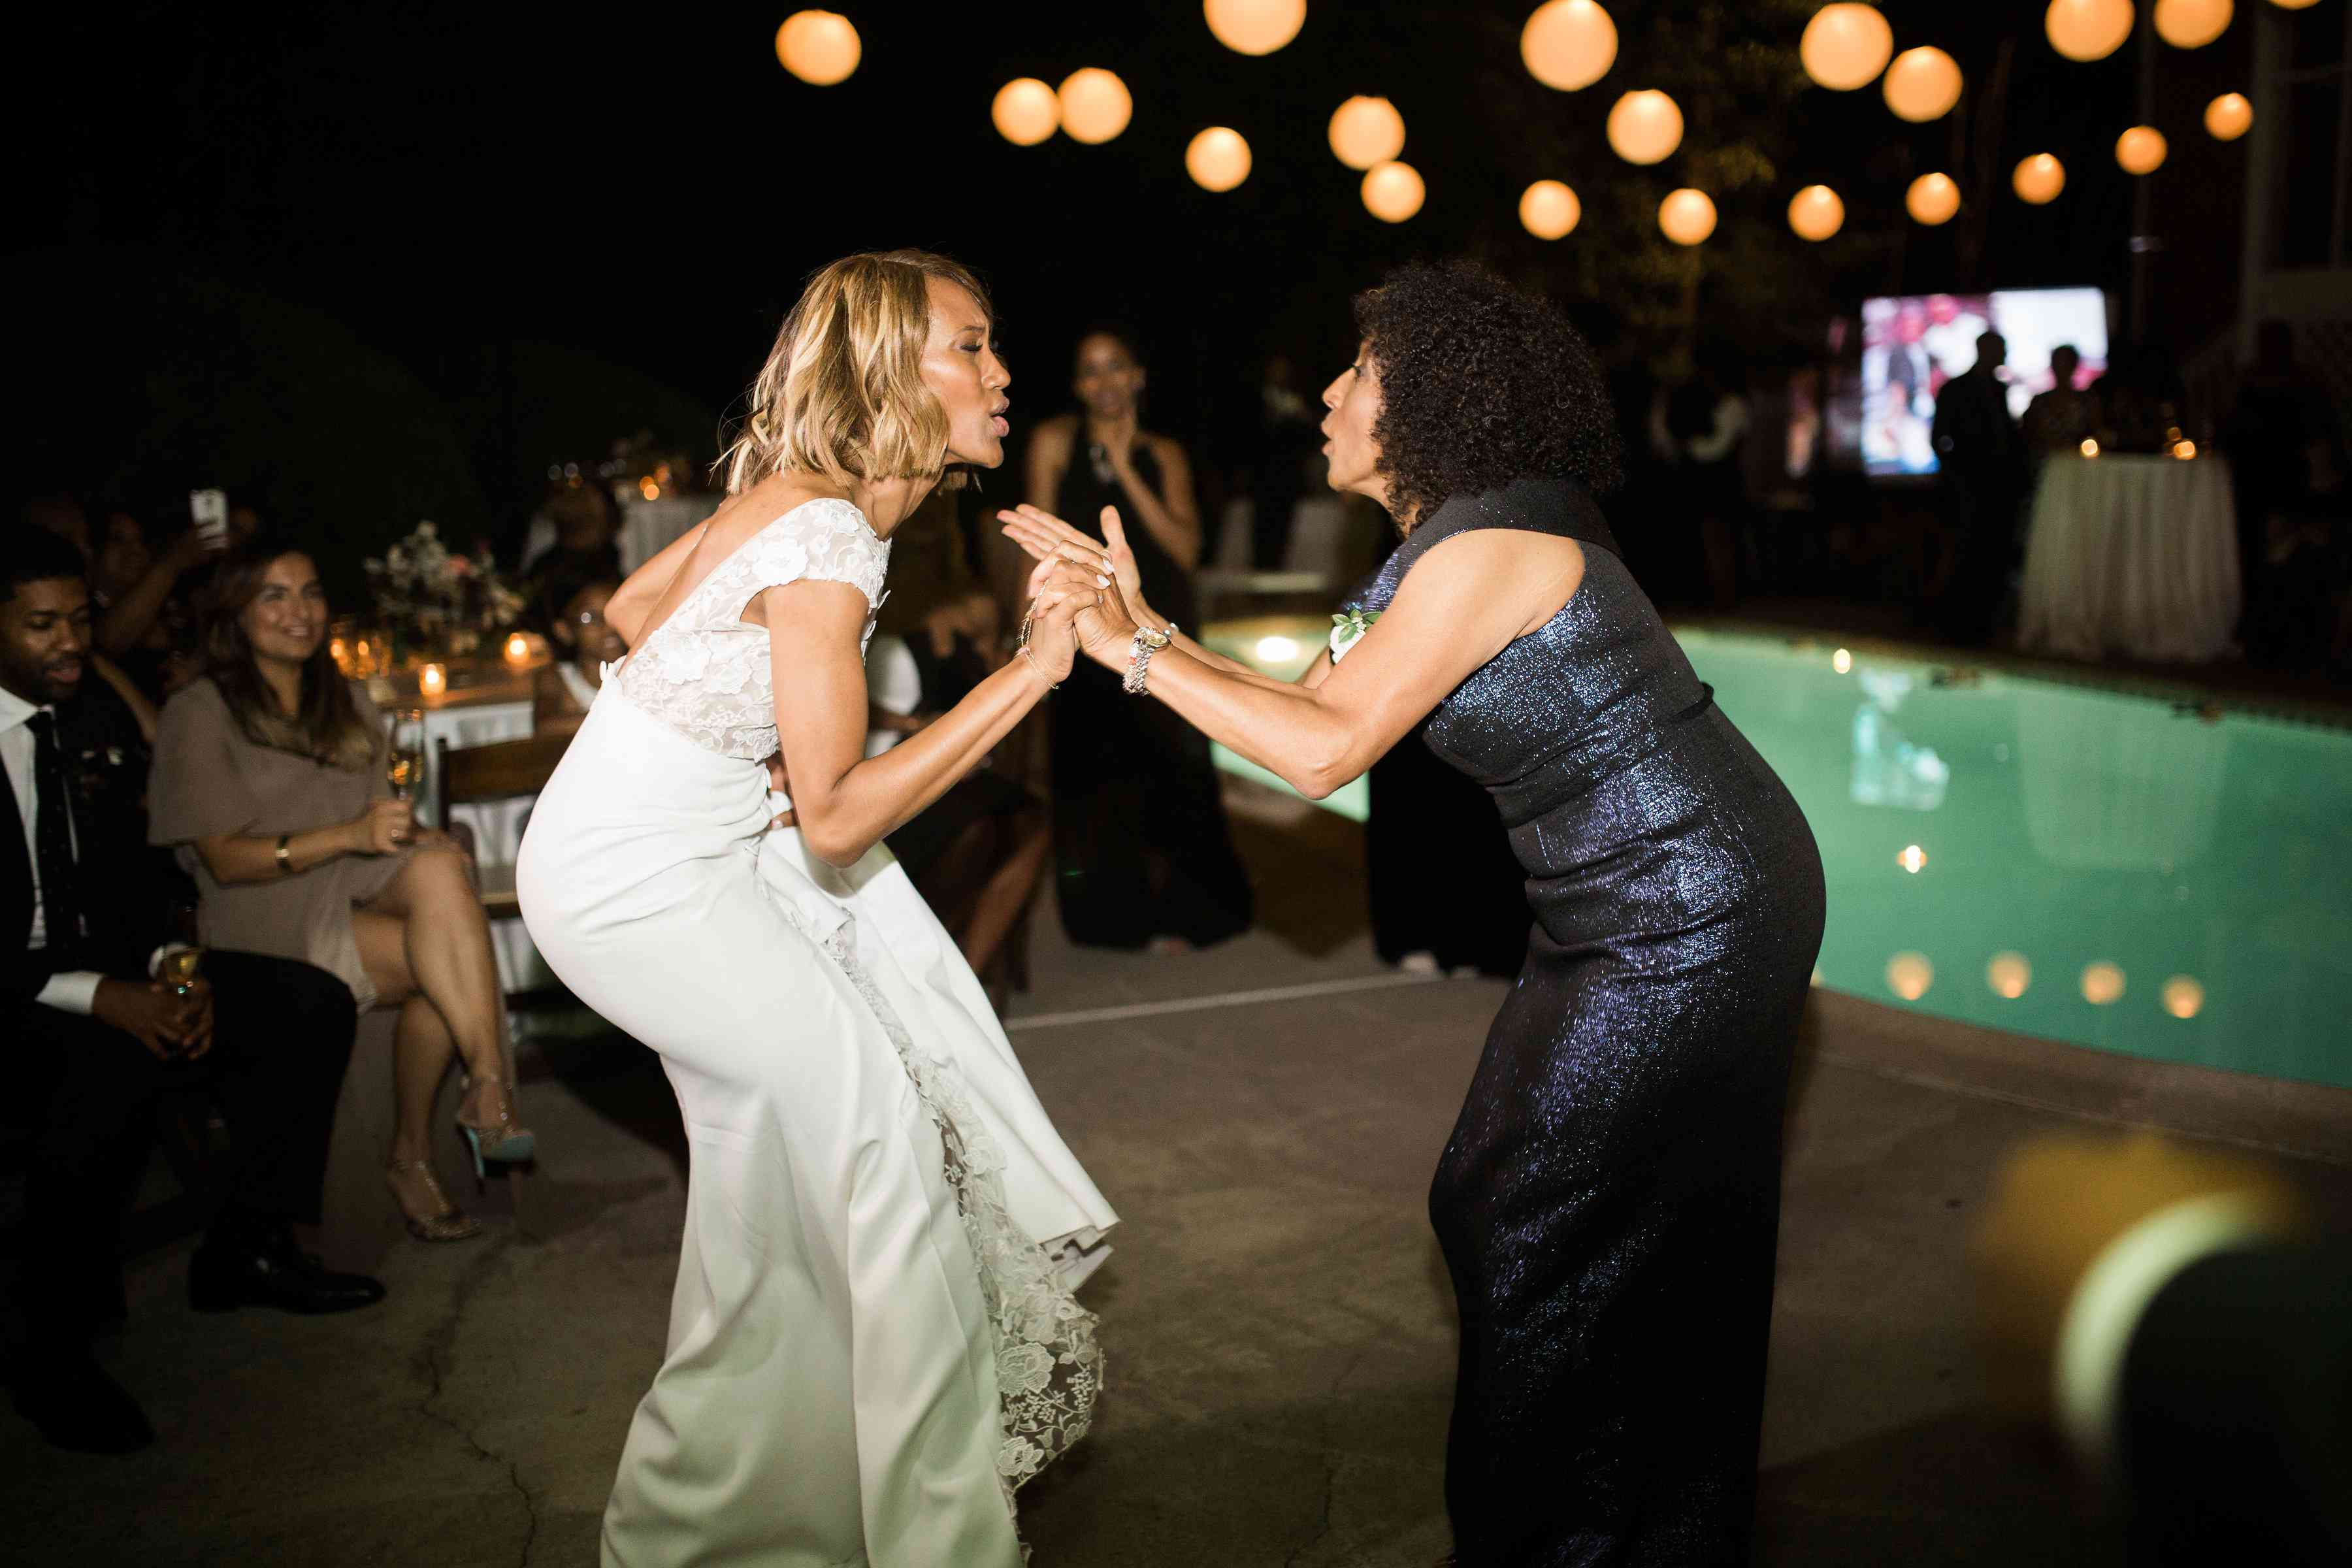 Bride and mother dance during reception